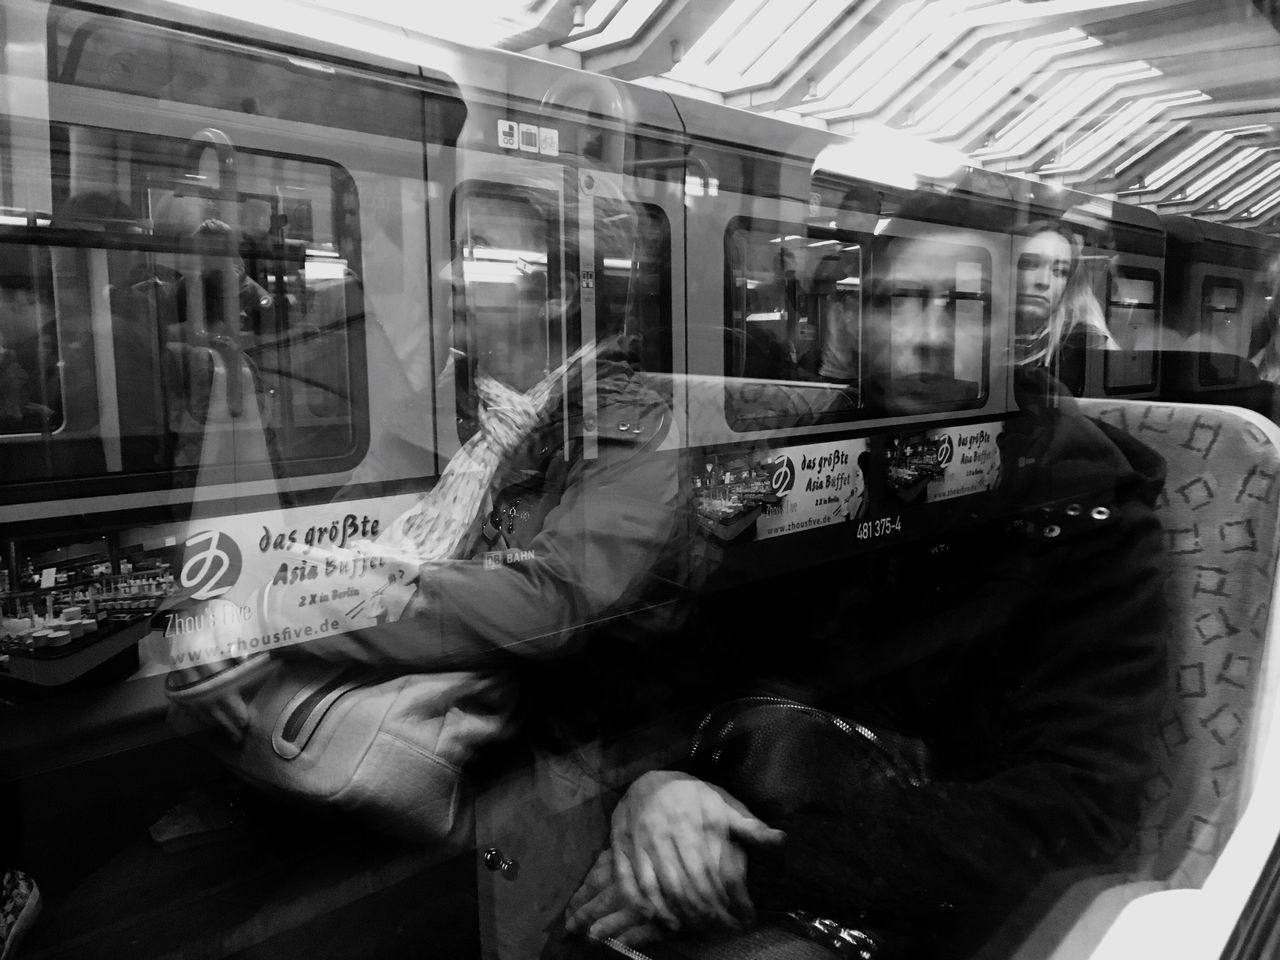 transportation, real people, public transportation, mode of transport, sitting, train - vehicle, one person, vehicle seat, reflection, land vehicle, rail transportation, men, lifestyles, day, technology, subway train, young adult, outdoors, human hand, people